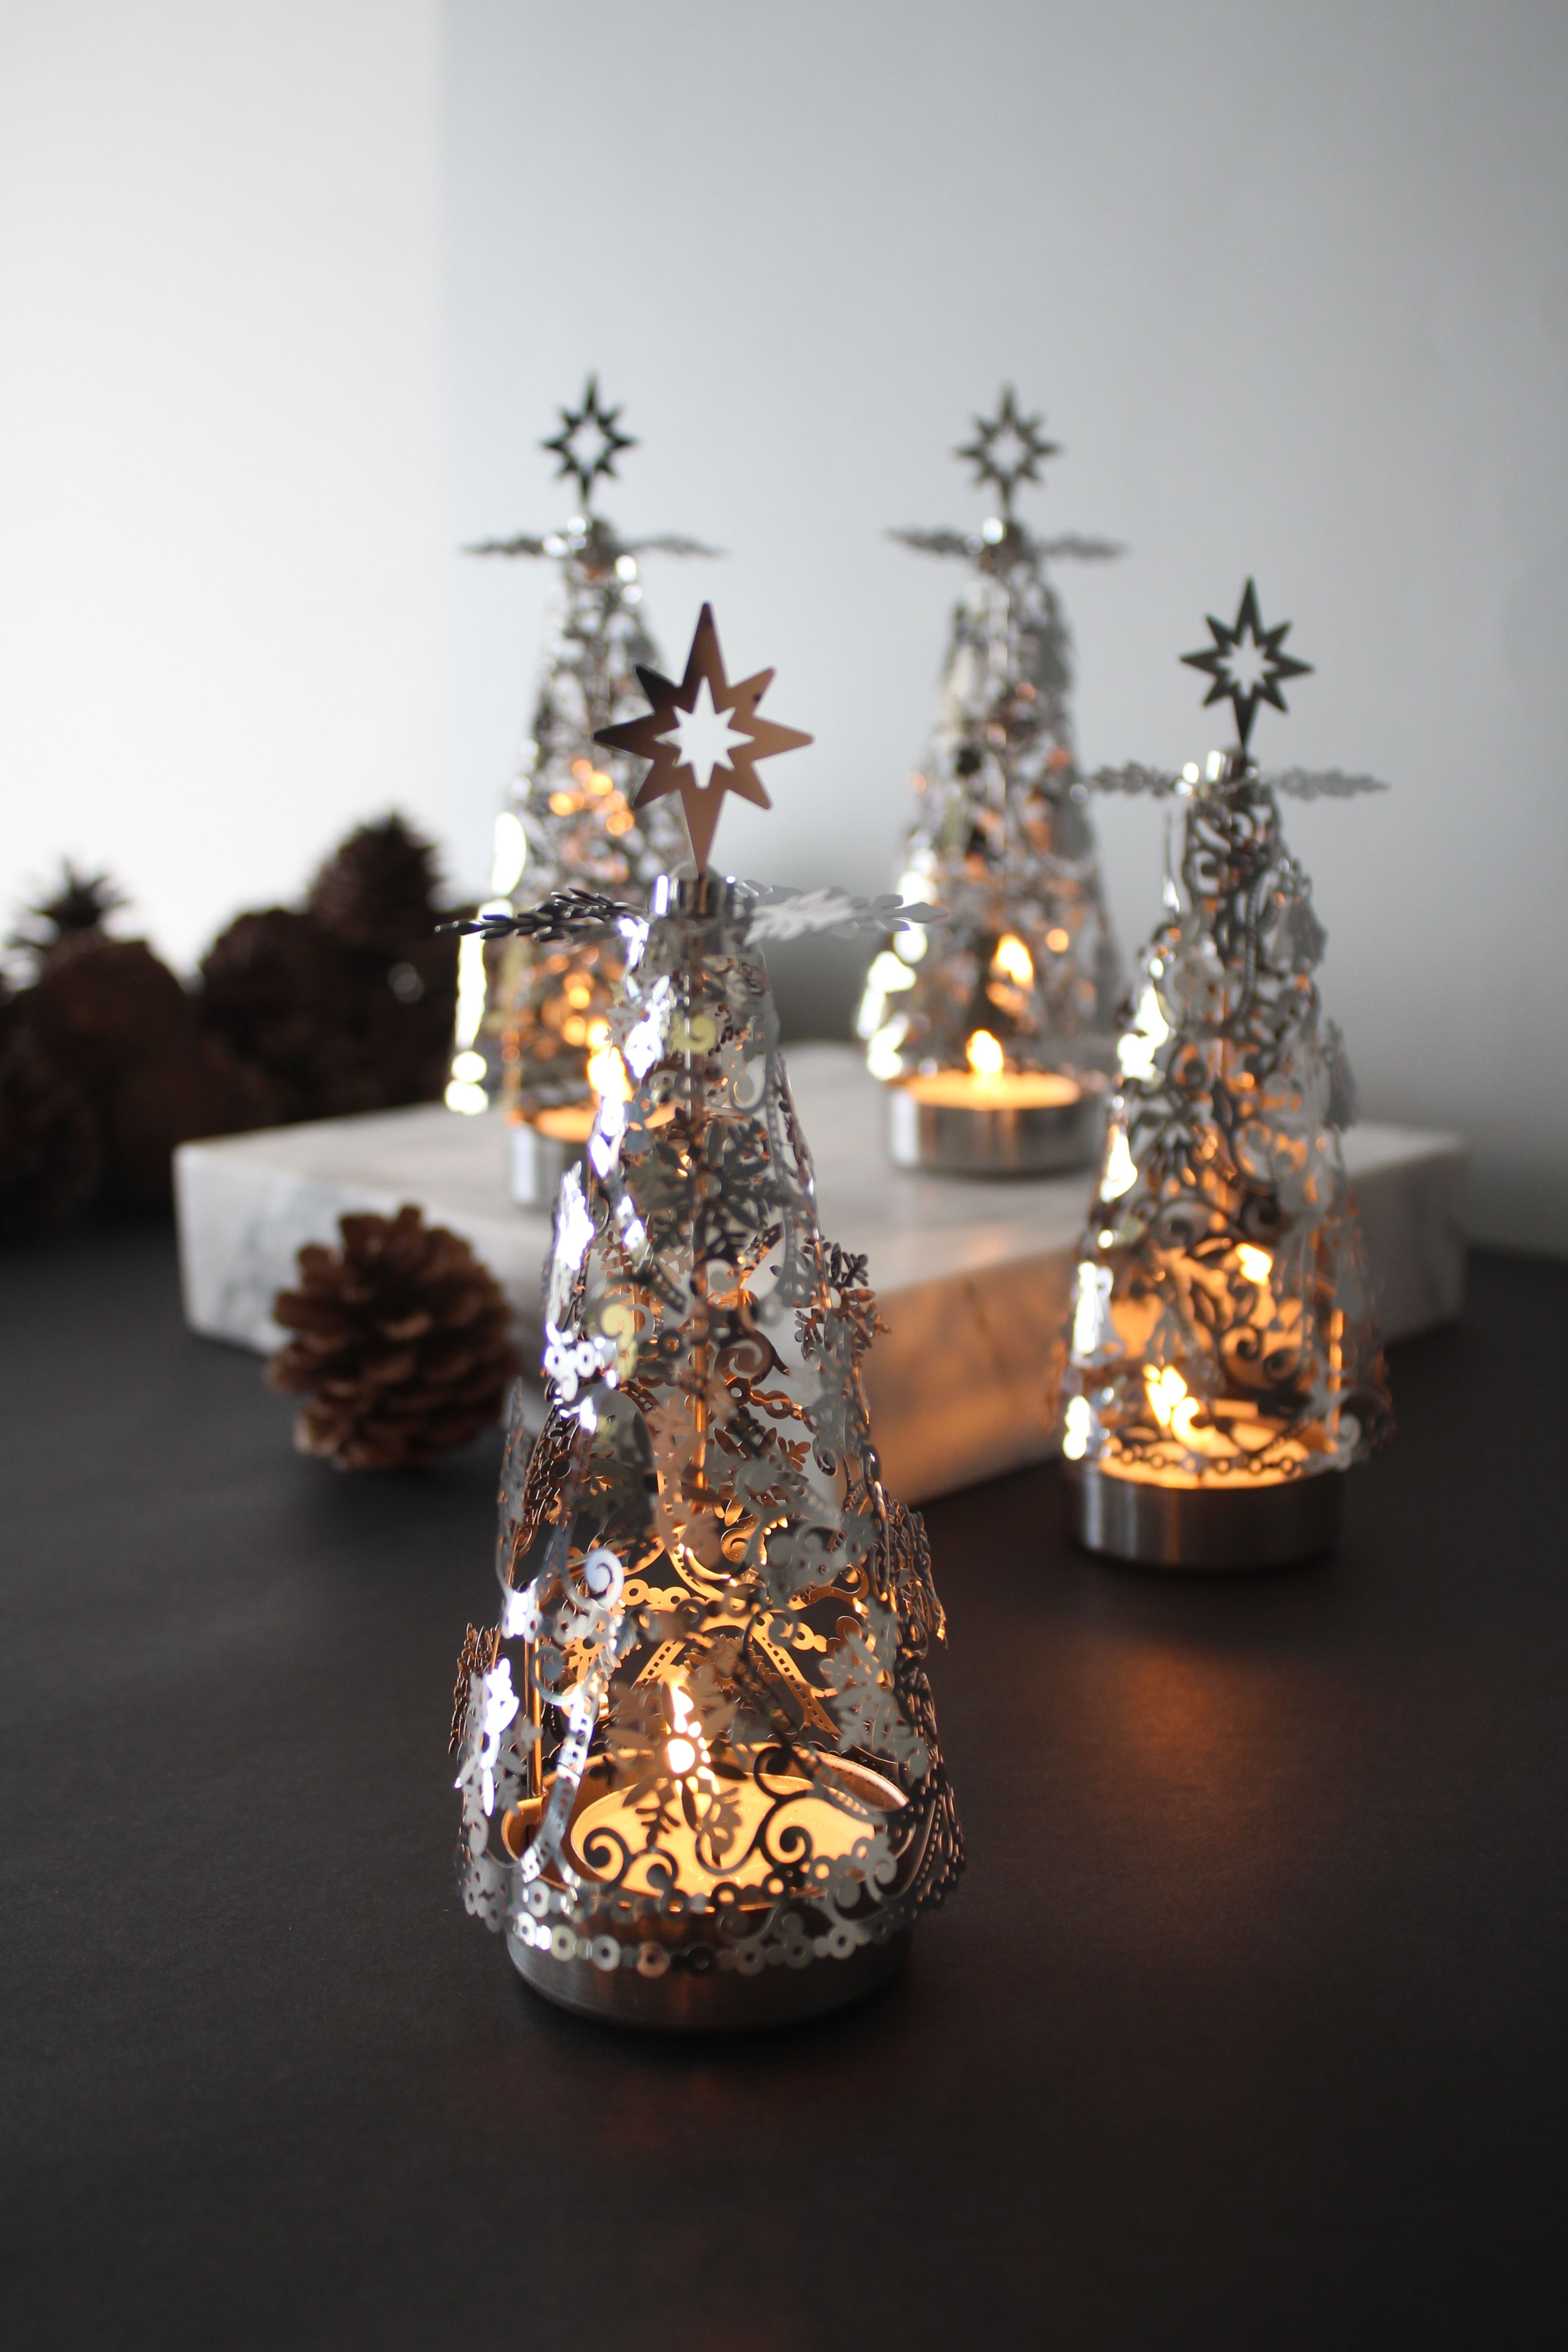 Stainless Steel - Christmas Tree Rotary